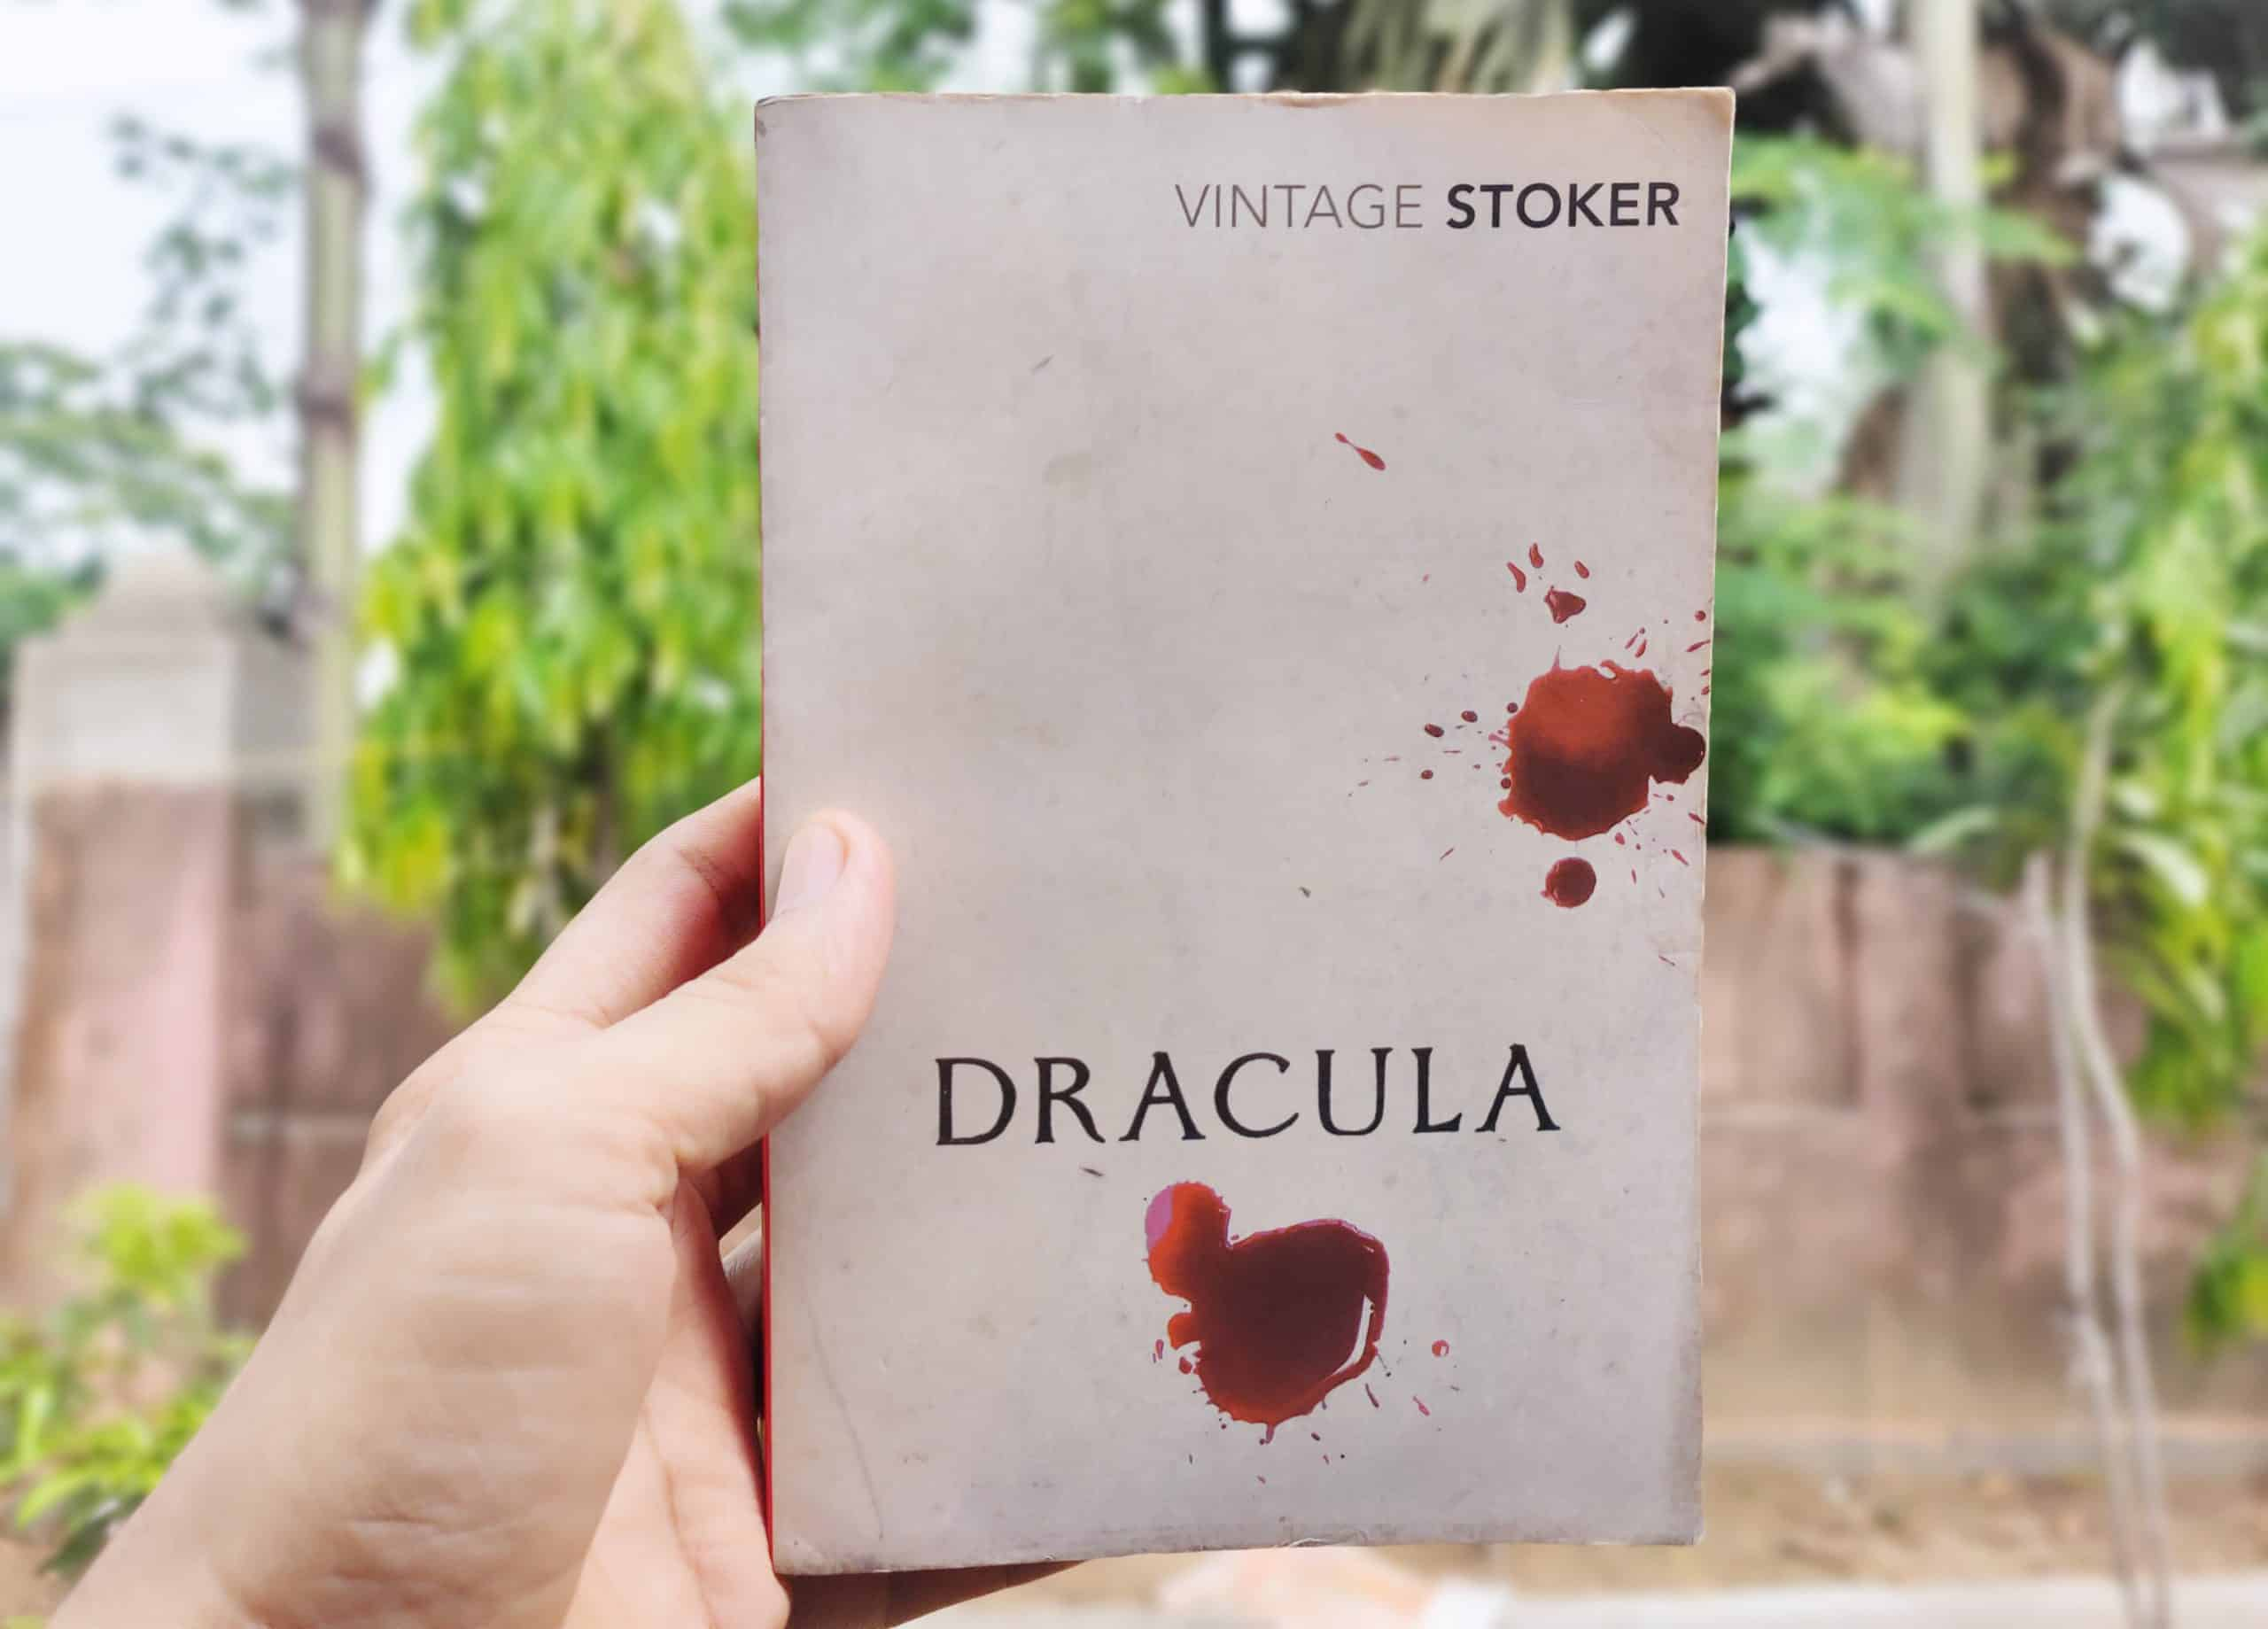 Dracula Beyond The Layers Of Gothic Symbolism And Horror